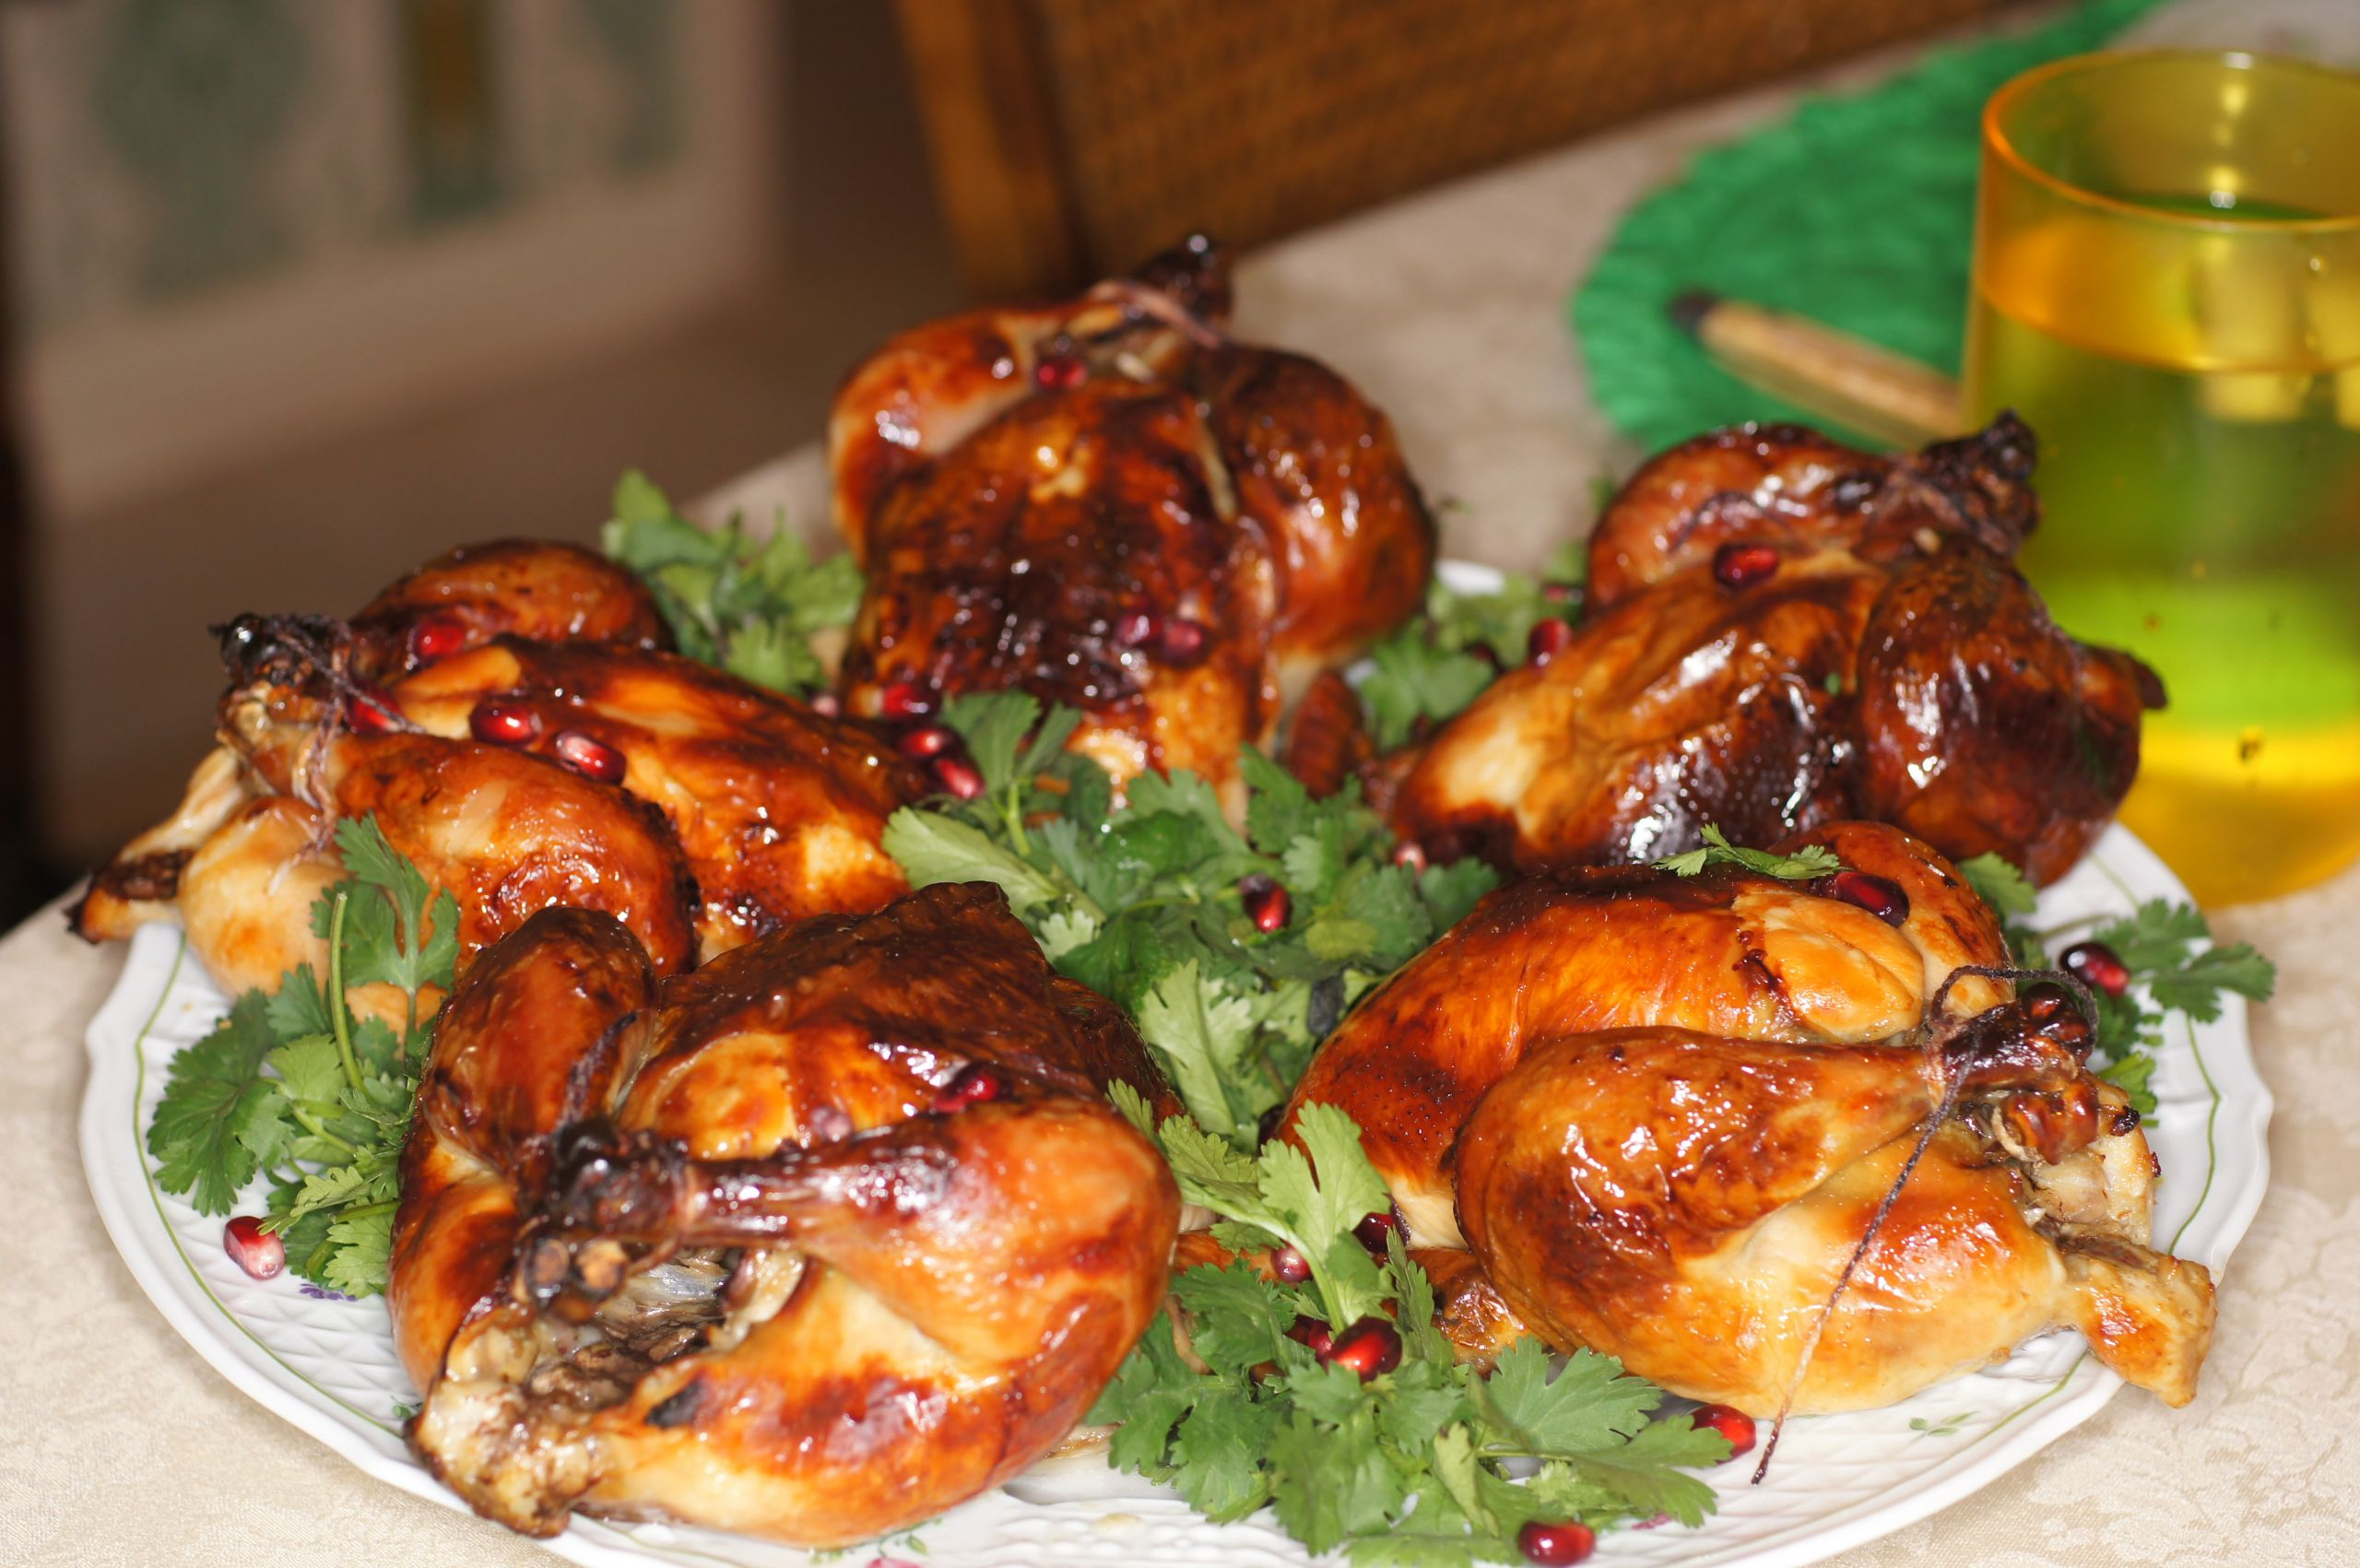 Recipe For Cornish Game Hens  Roasted Brined Cornish Game Hens with Pomegranate Sauce